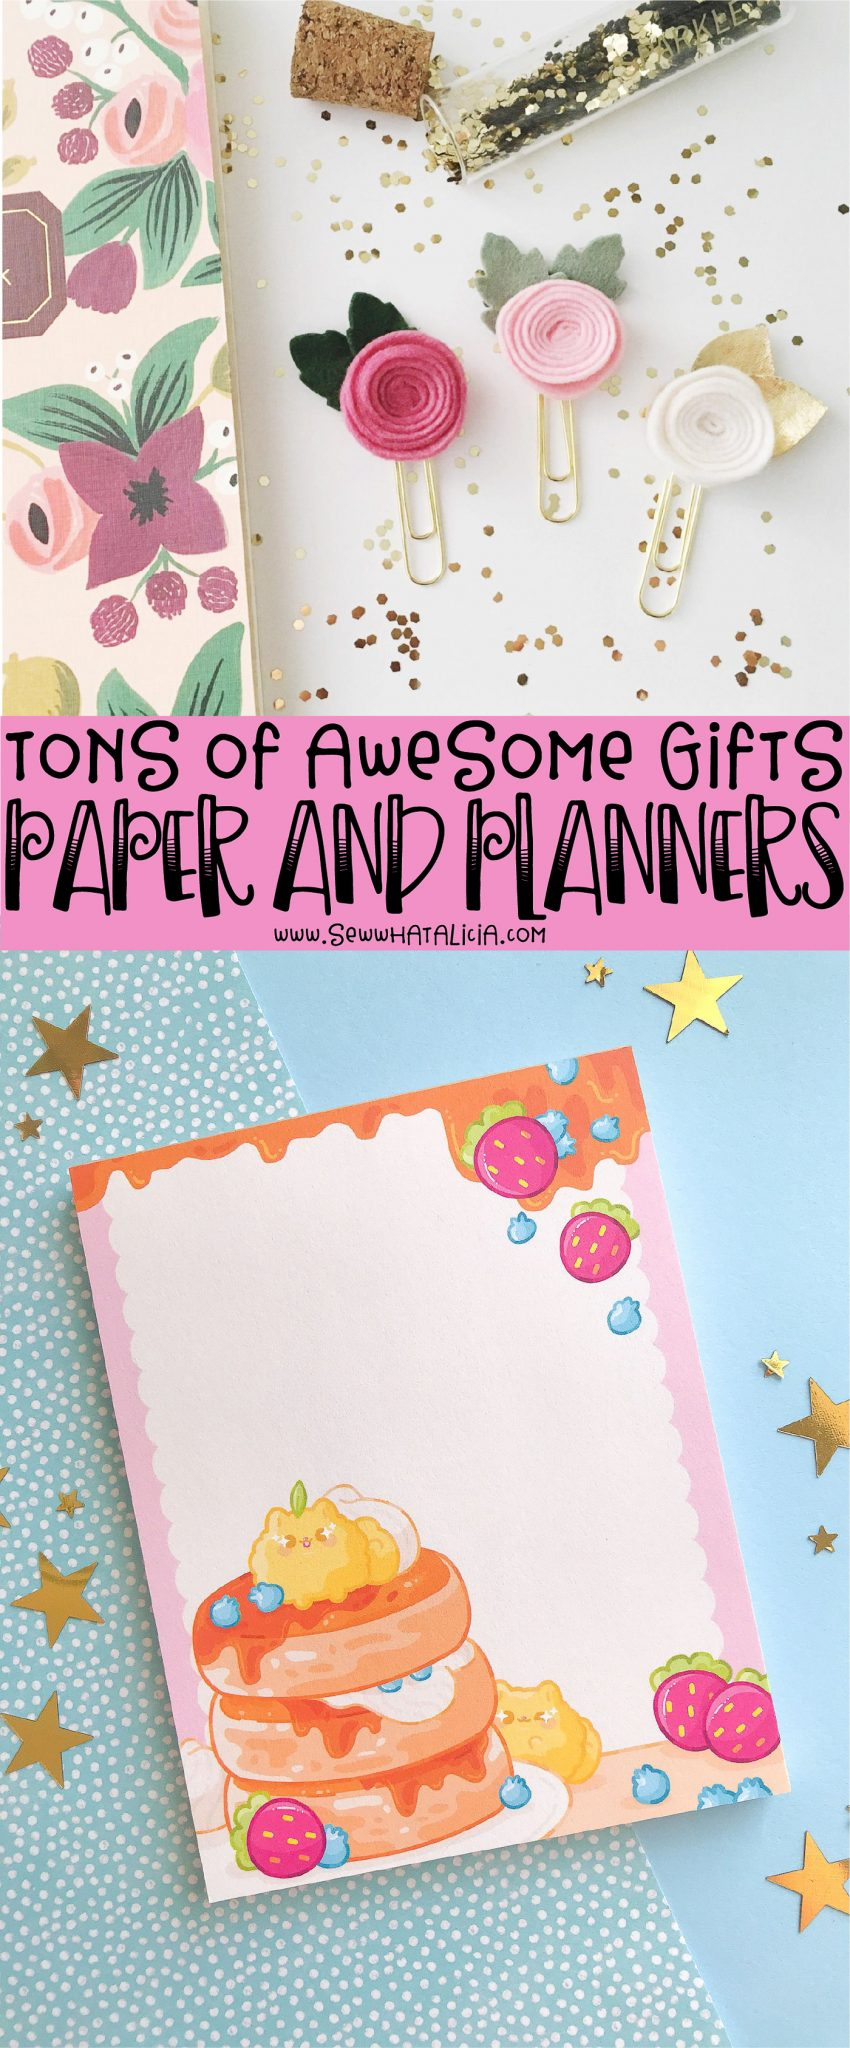 text overlay reading tons of awesome gifts paper and planners